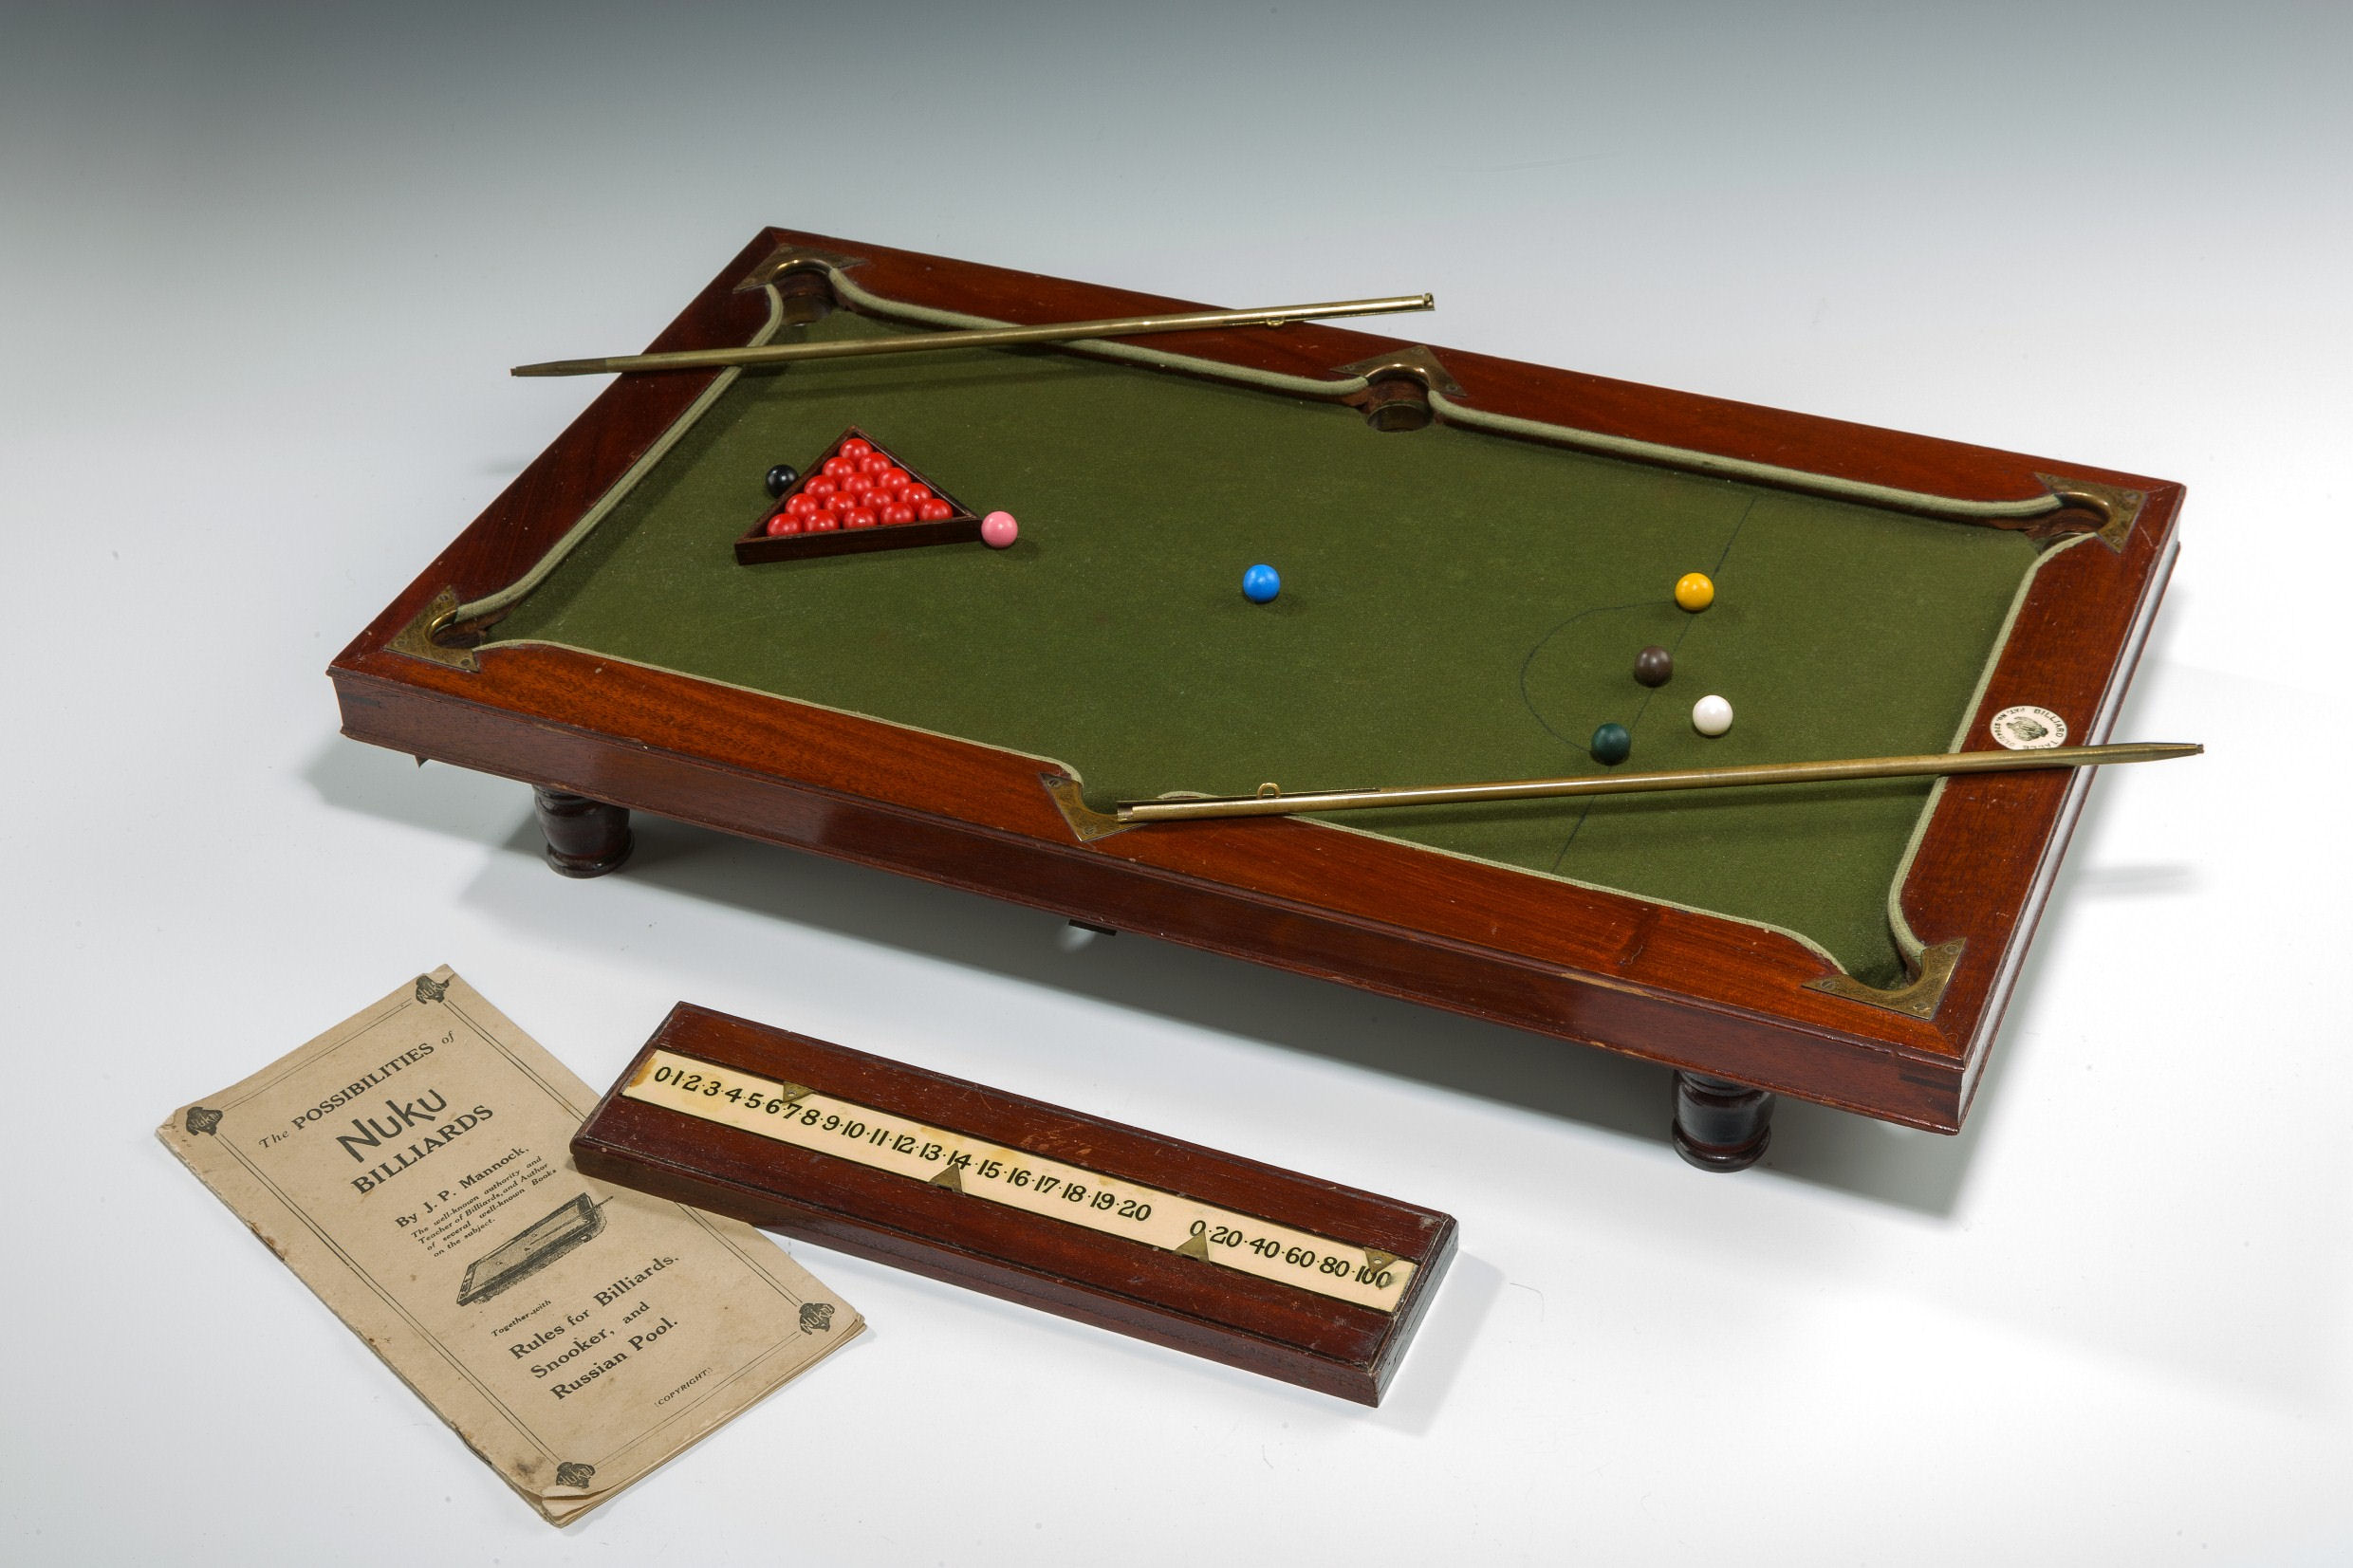 ANTIQUE MINIATURE NUKU BILLIARDS TABLE - Sports authority pool table